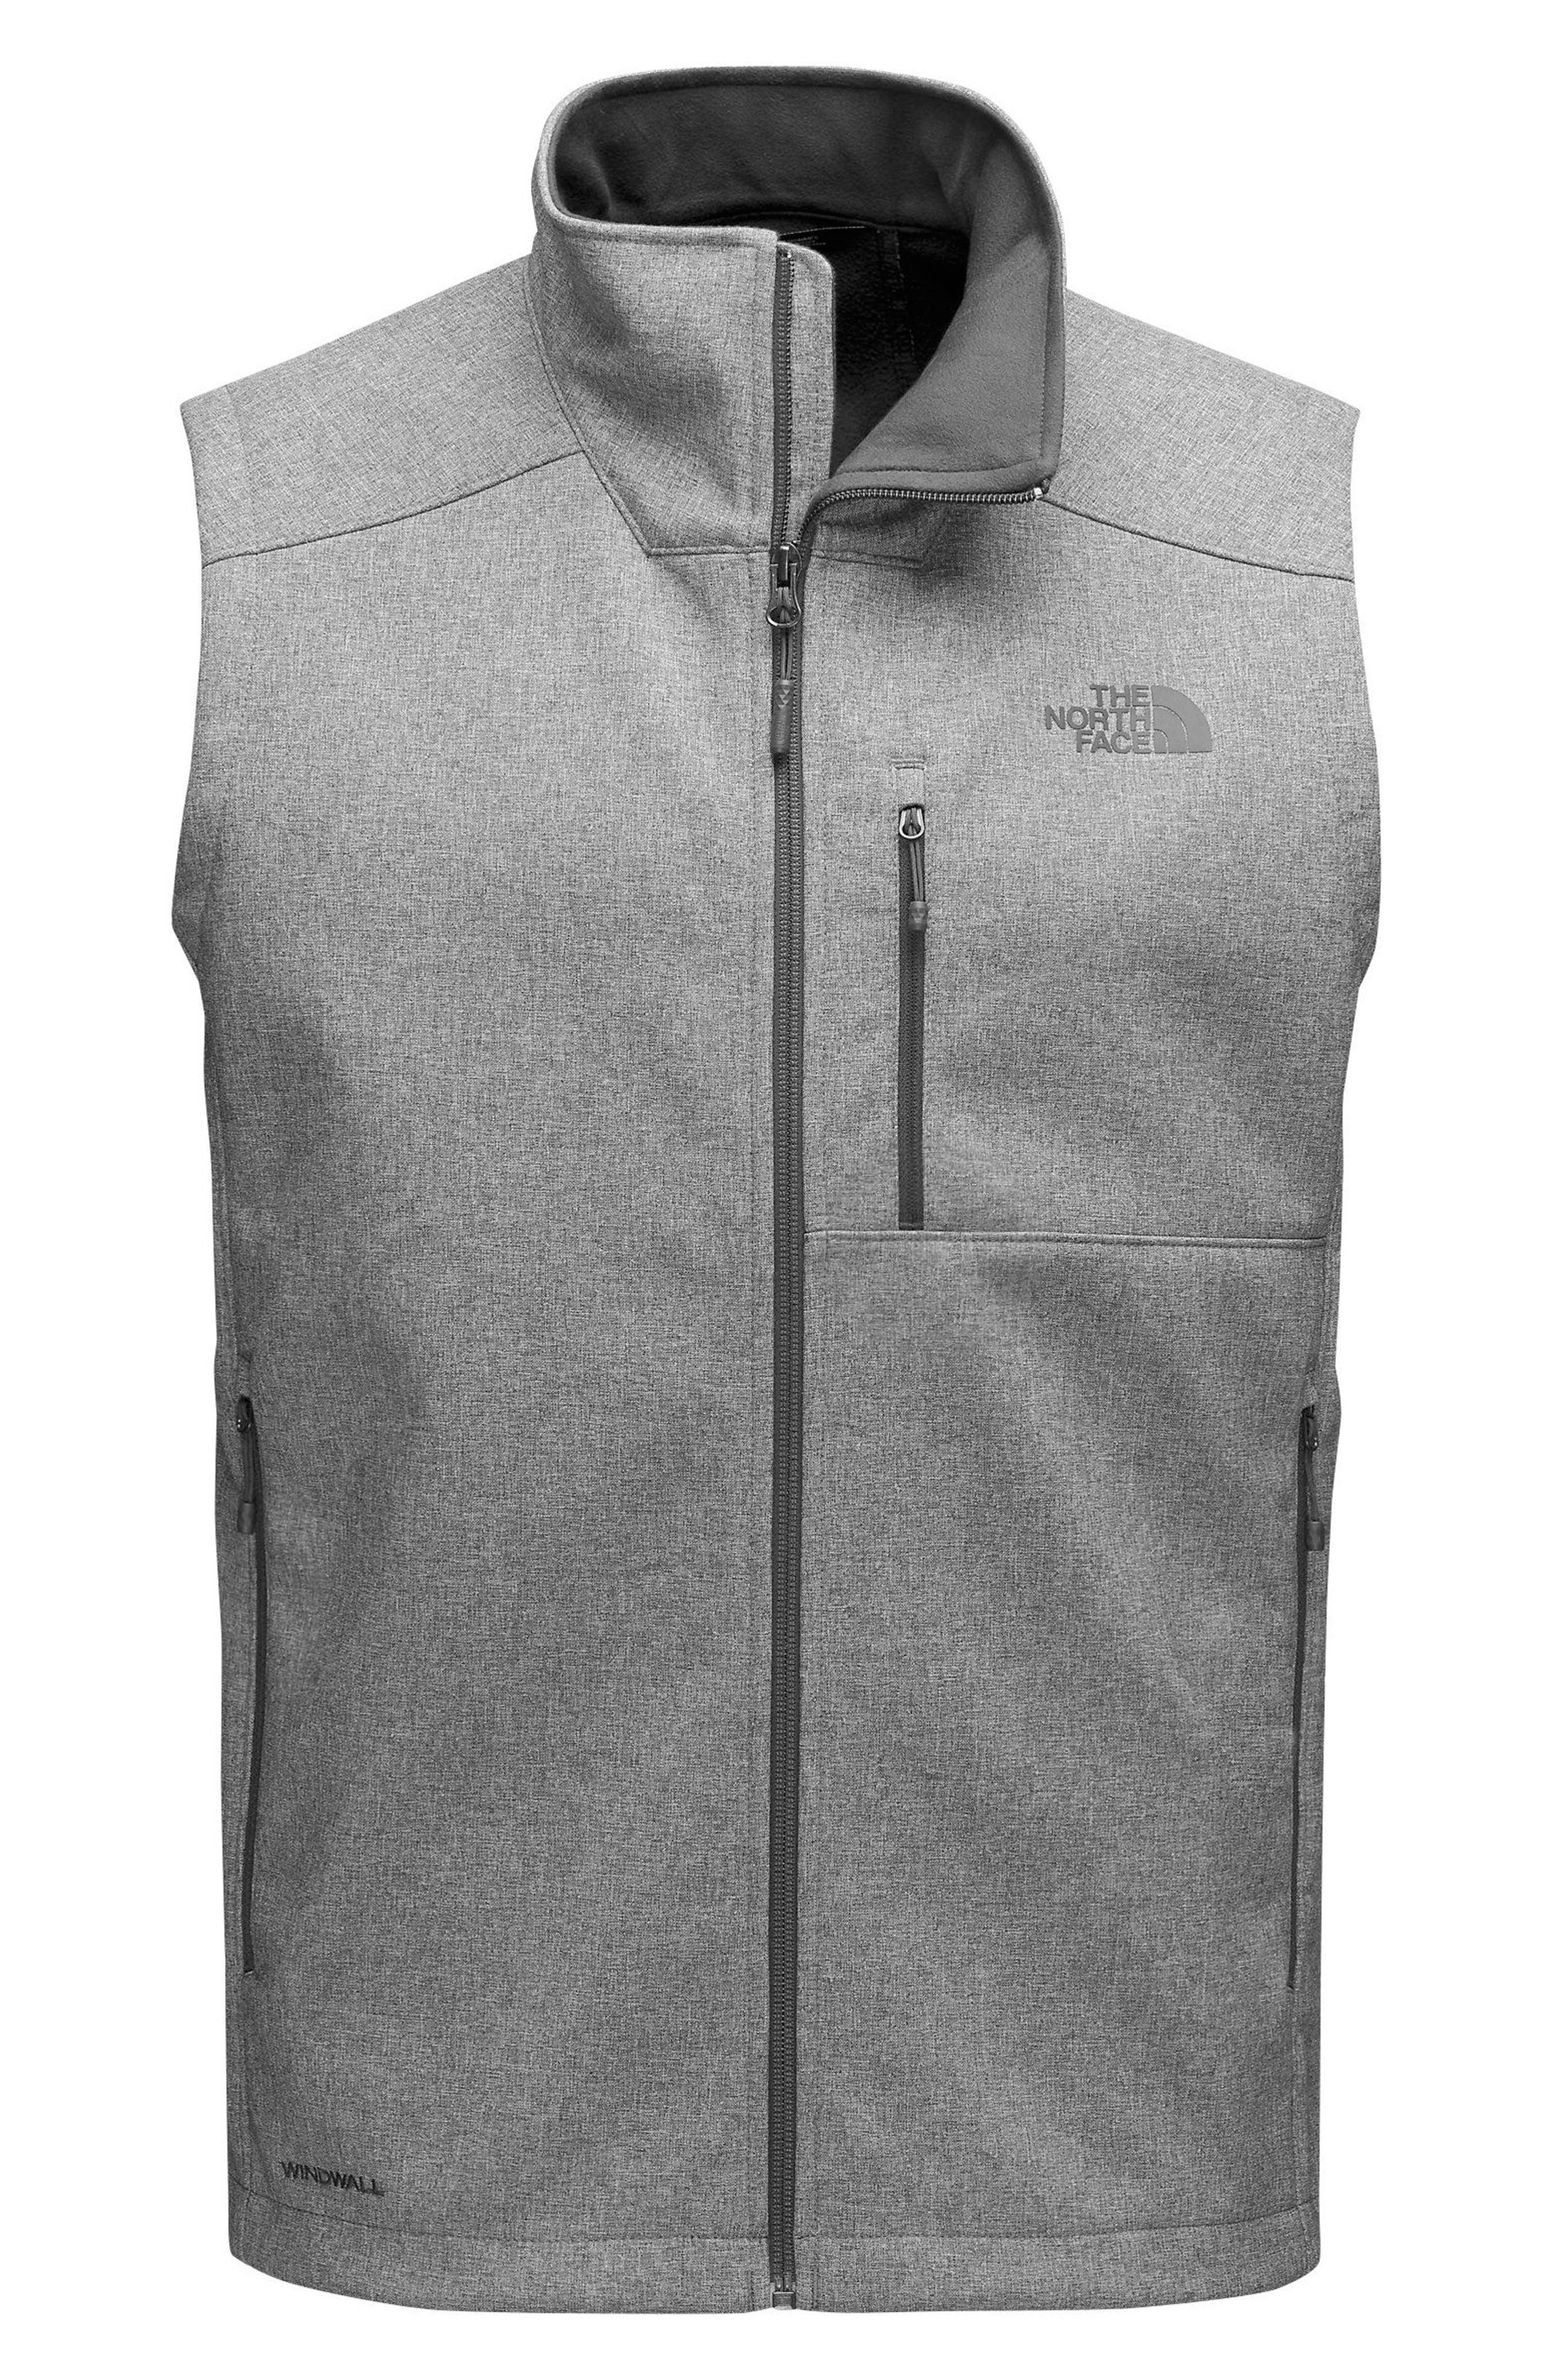 Alternate Image 1 Selected - The North Face Apex Bionic 2 Vest